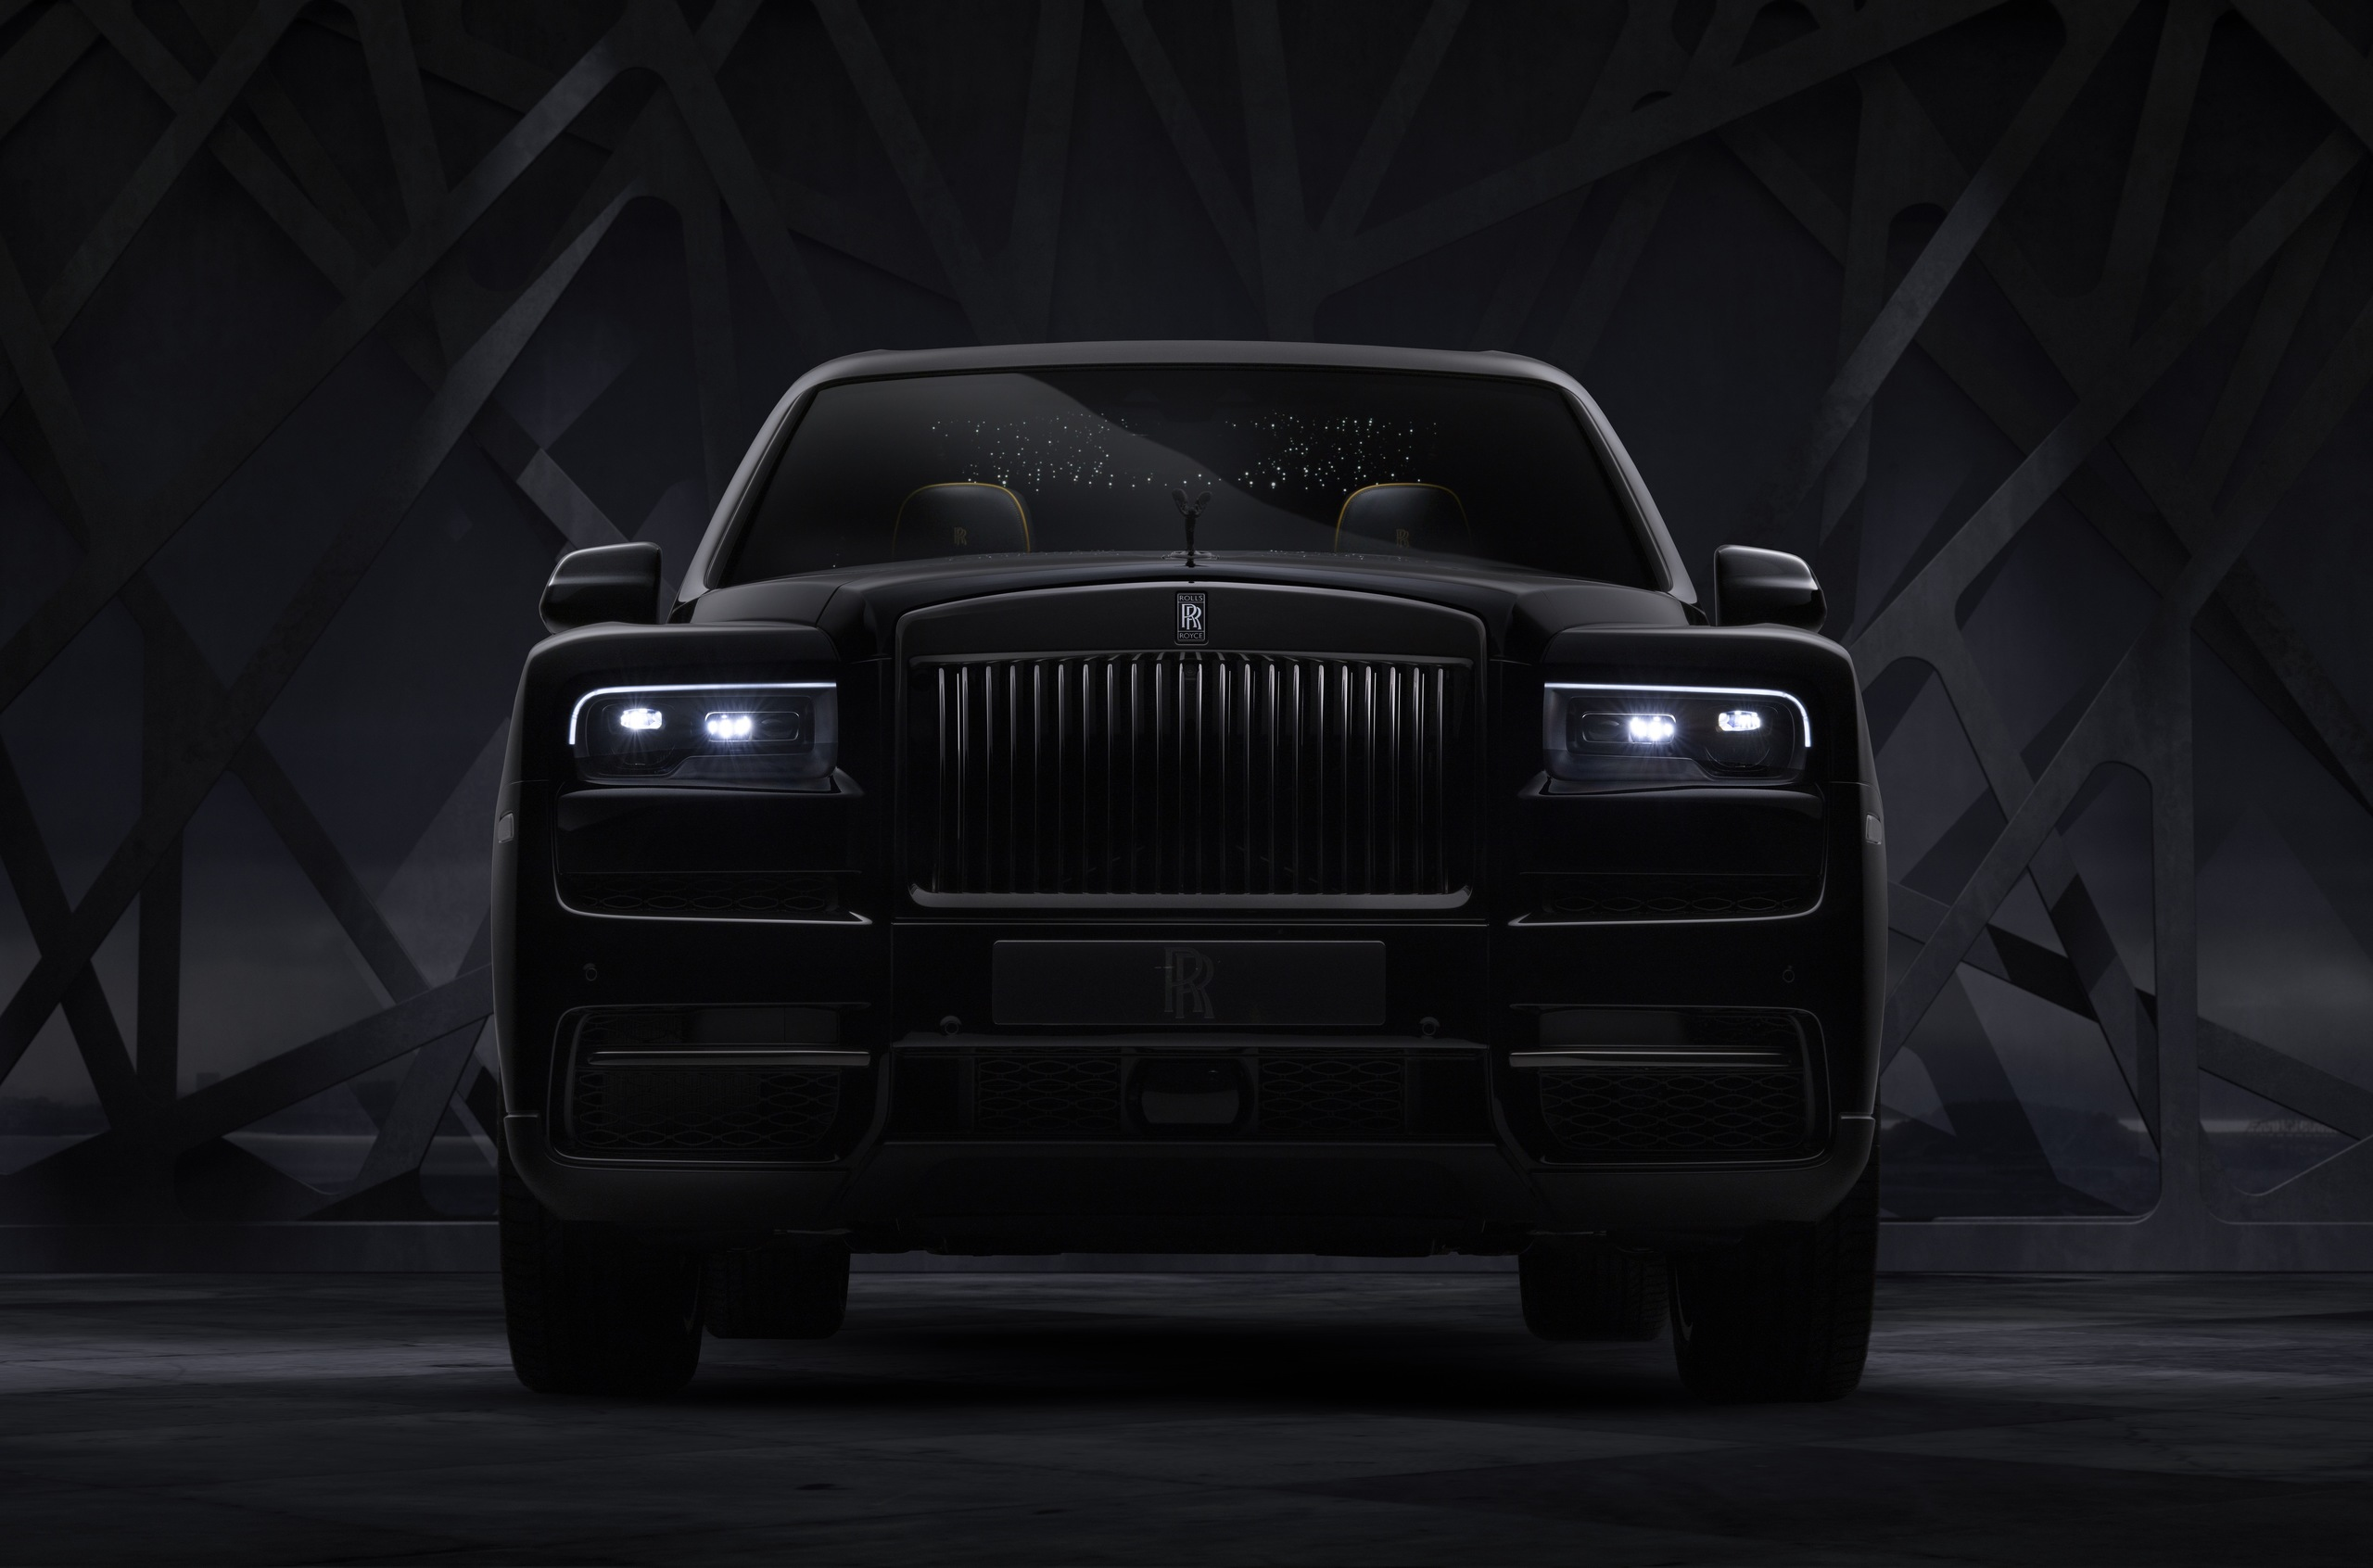 The British luxury carmaker has expanded its Black Badge line to incorporate the Cullinan SUV. The special edition comes with chassis adjustments, a slightly boosted engine and the marque's signature Starry Sky ceiling.